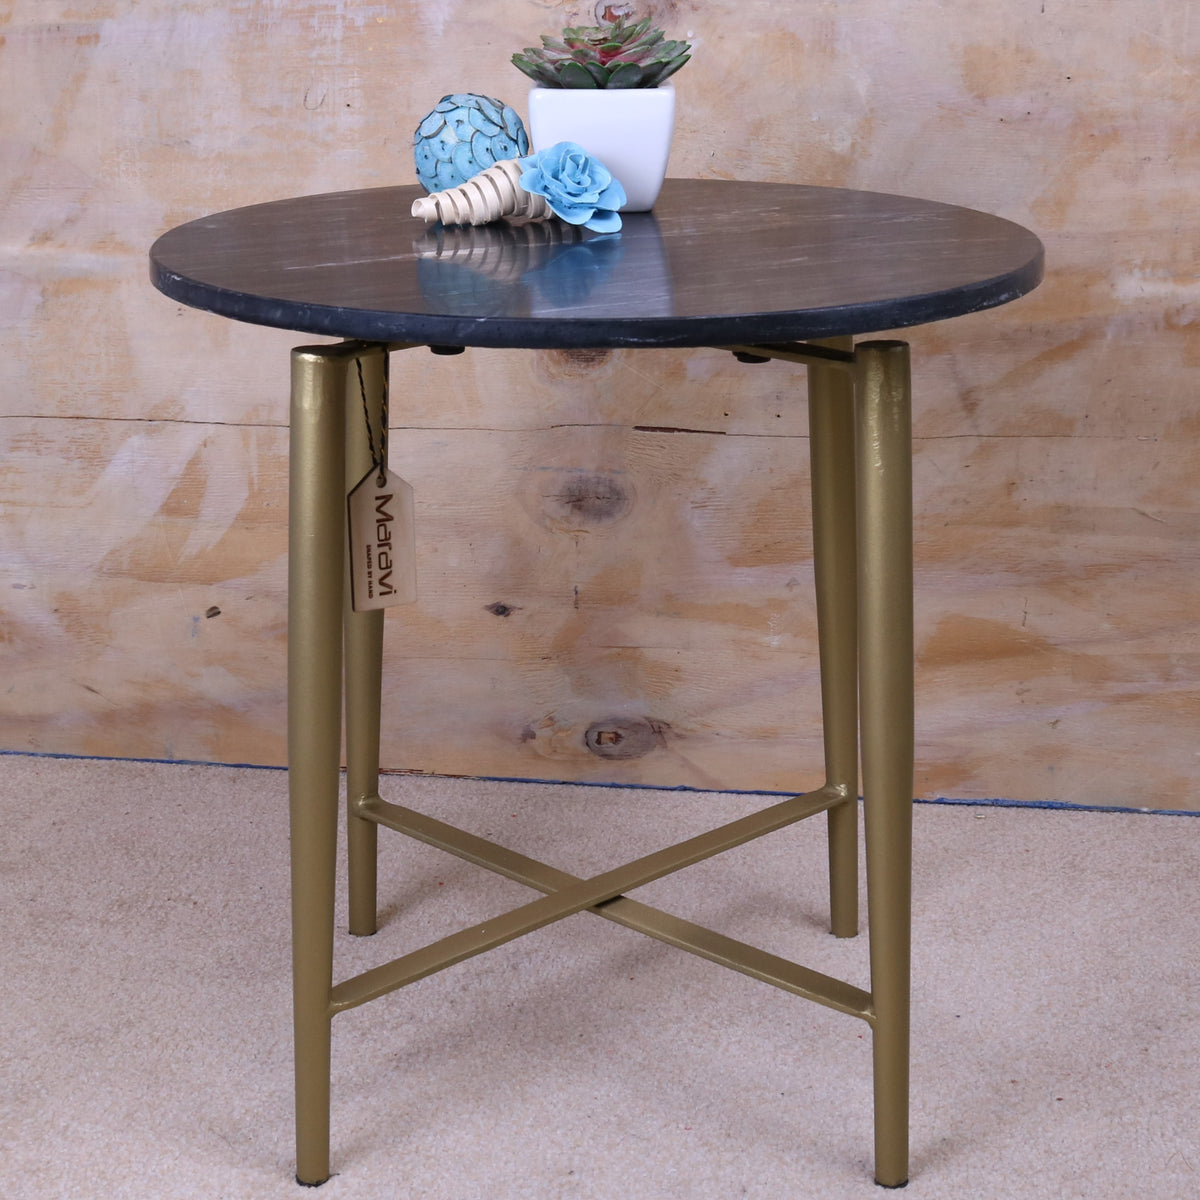 Liwal Black Marble Top Table Gold Legs 43cm